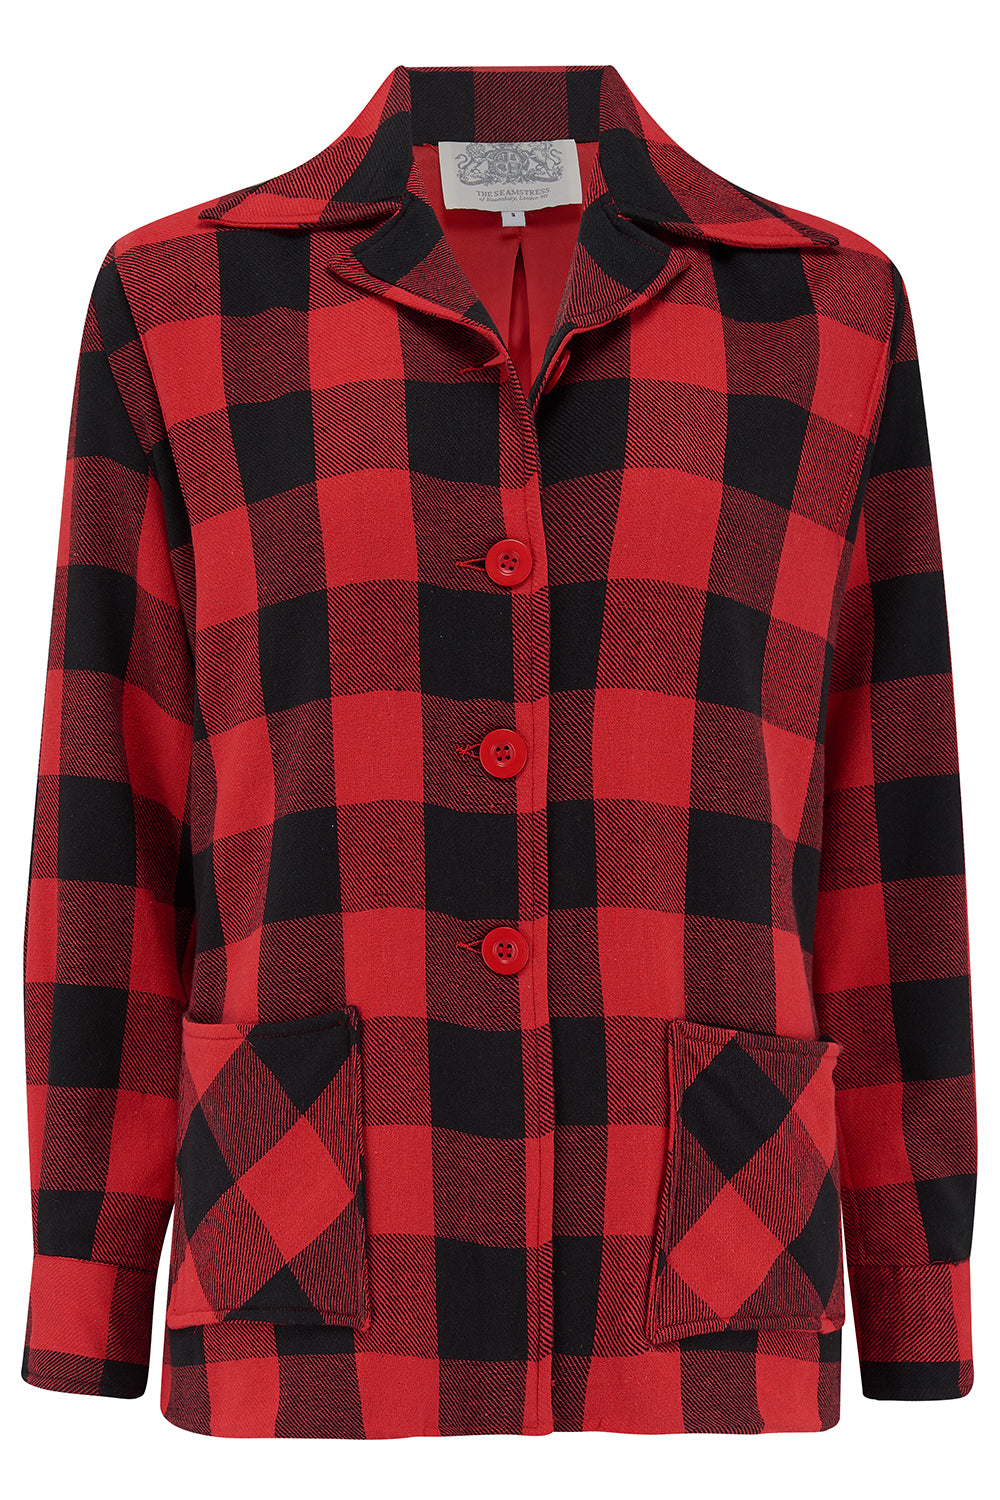 "The Seamstress Of Bloomsbury ""Pearl"" Pendleton 49er Style Jacket in 40s red/black Buffalo check, Classic & Authentic 1940s Vintage Style - RocknRomance Clothing"